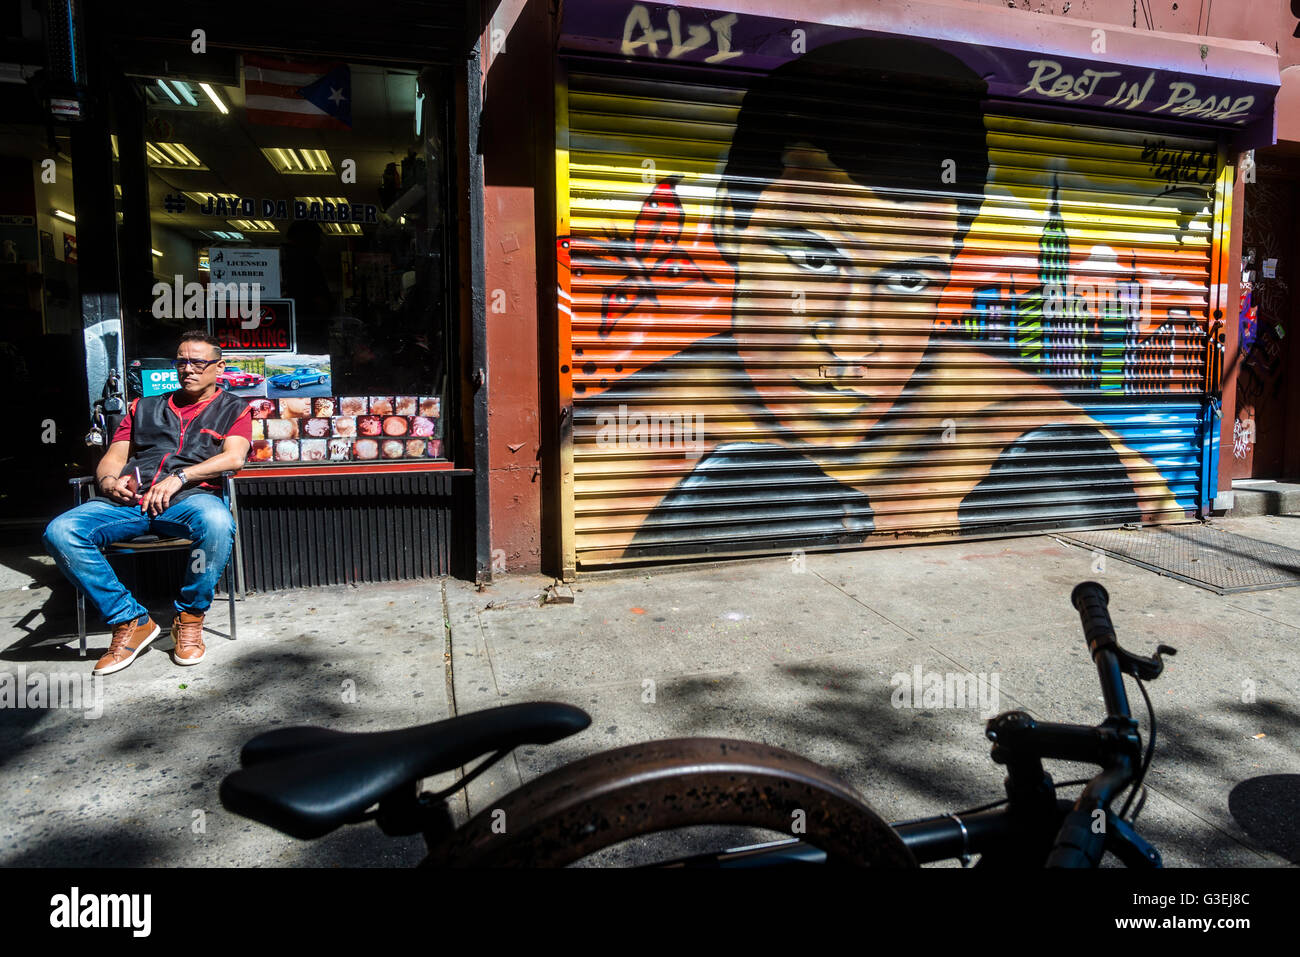 New York, NY 10 June 2016 - Memorial mural for Muhammad Ali in the East Village neighbourhood of Manhattan ©Stacy Stock Photo